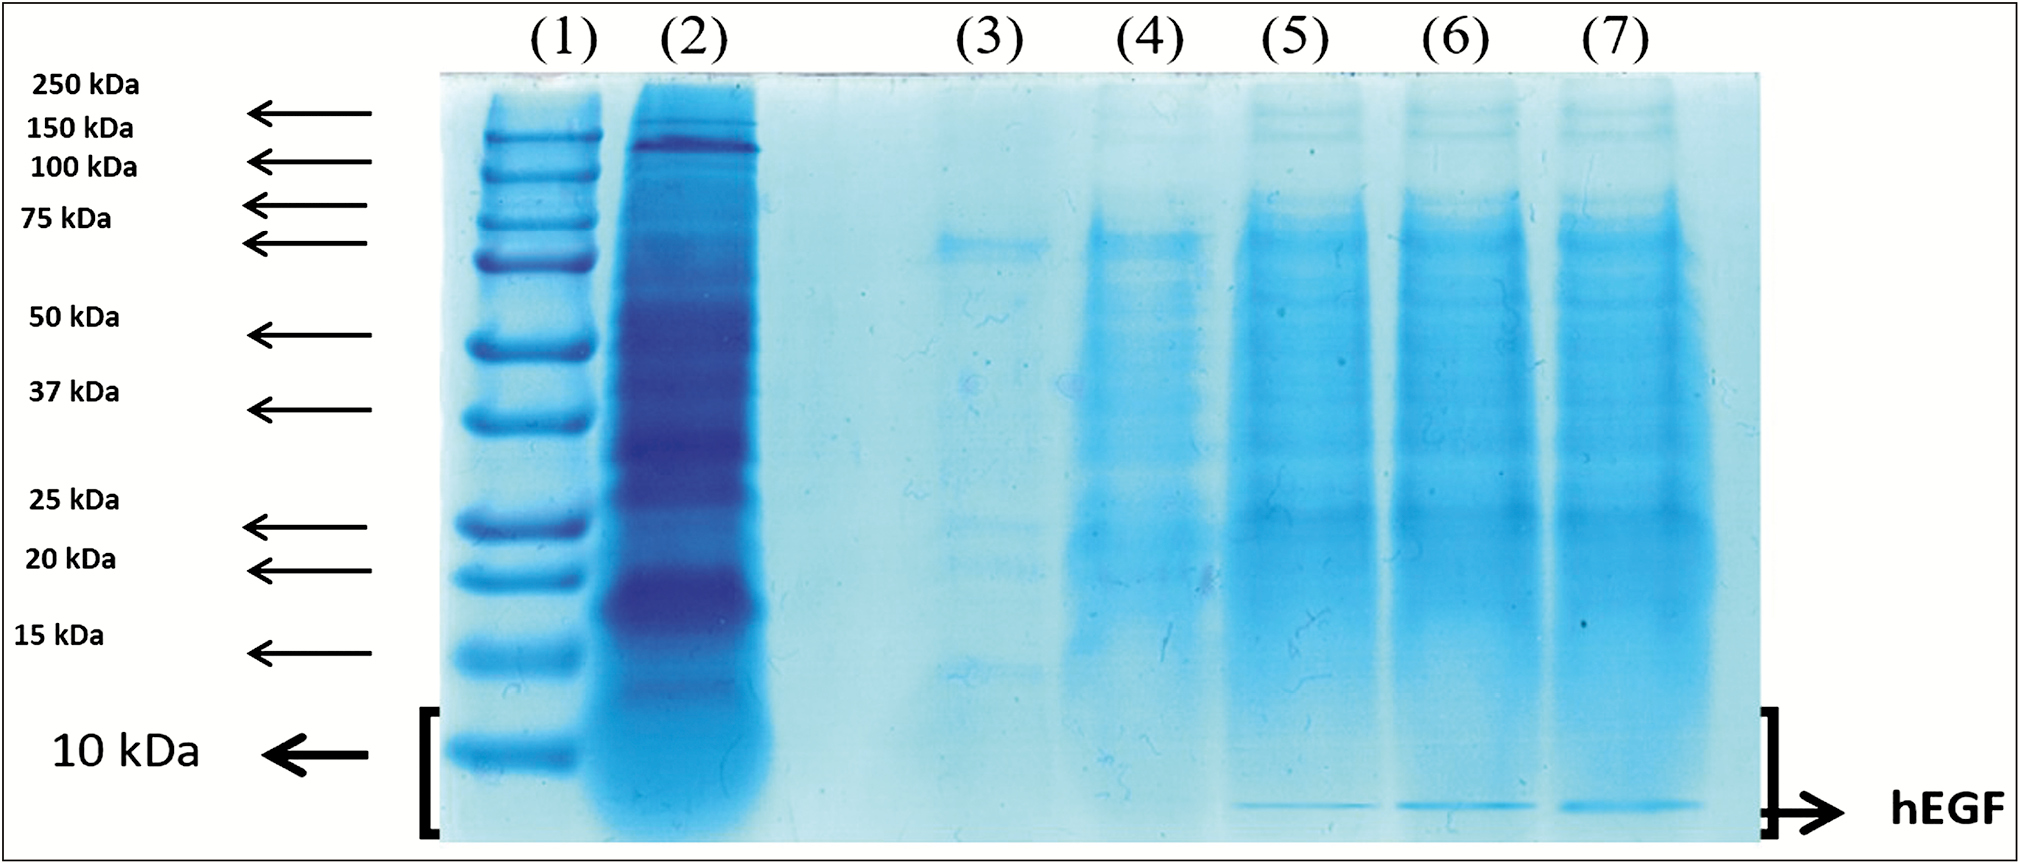 Figure 3: SDS-PAGE Tricin electrophoregram of rhEGF expression from the medium in fermenter scale: (1) Marker, (2) The soluble fraction 8h after induction, (3) Medium fraction at induction, (4) medium fraction 8h after induction, (5,6,7) Medium fraction 20h after initiation